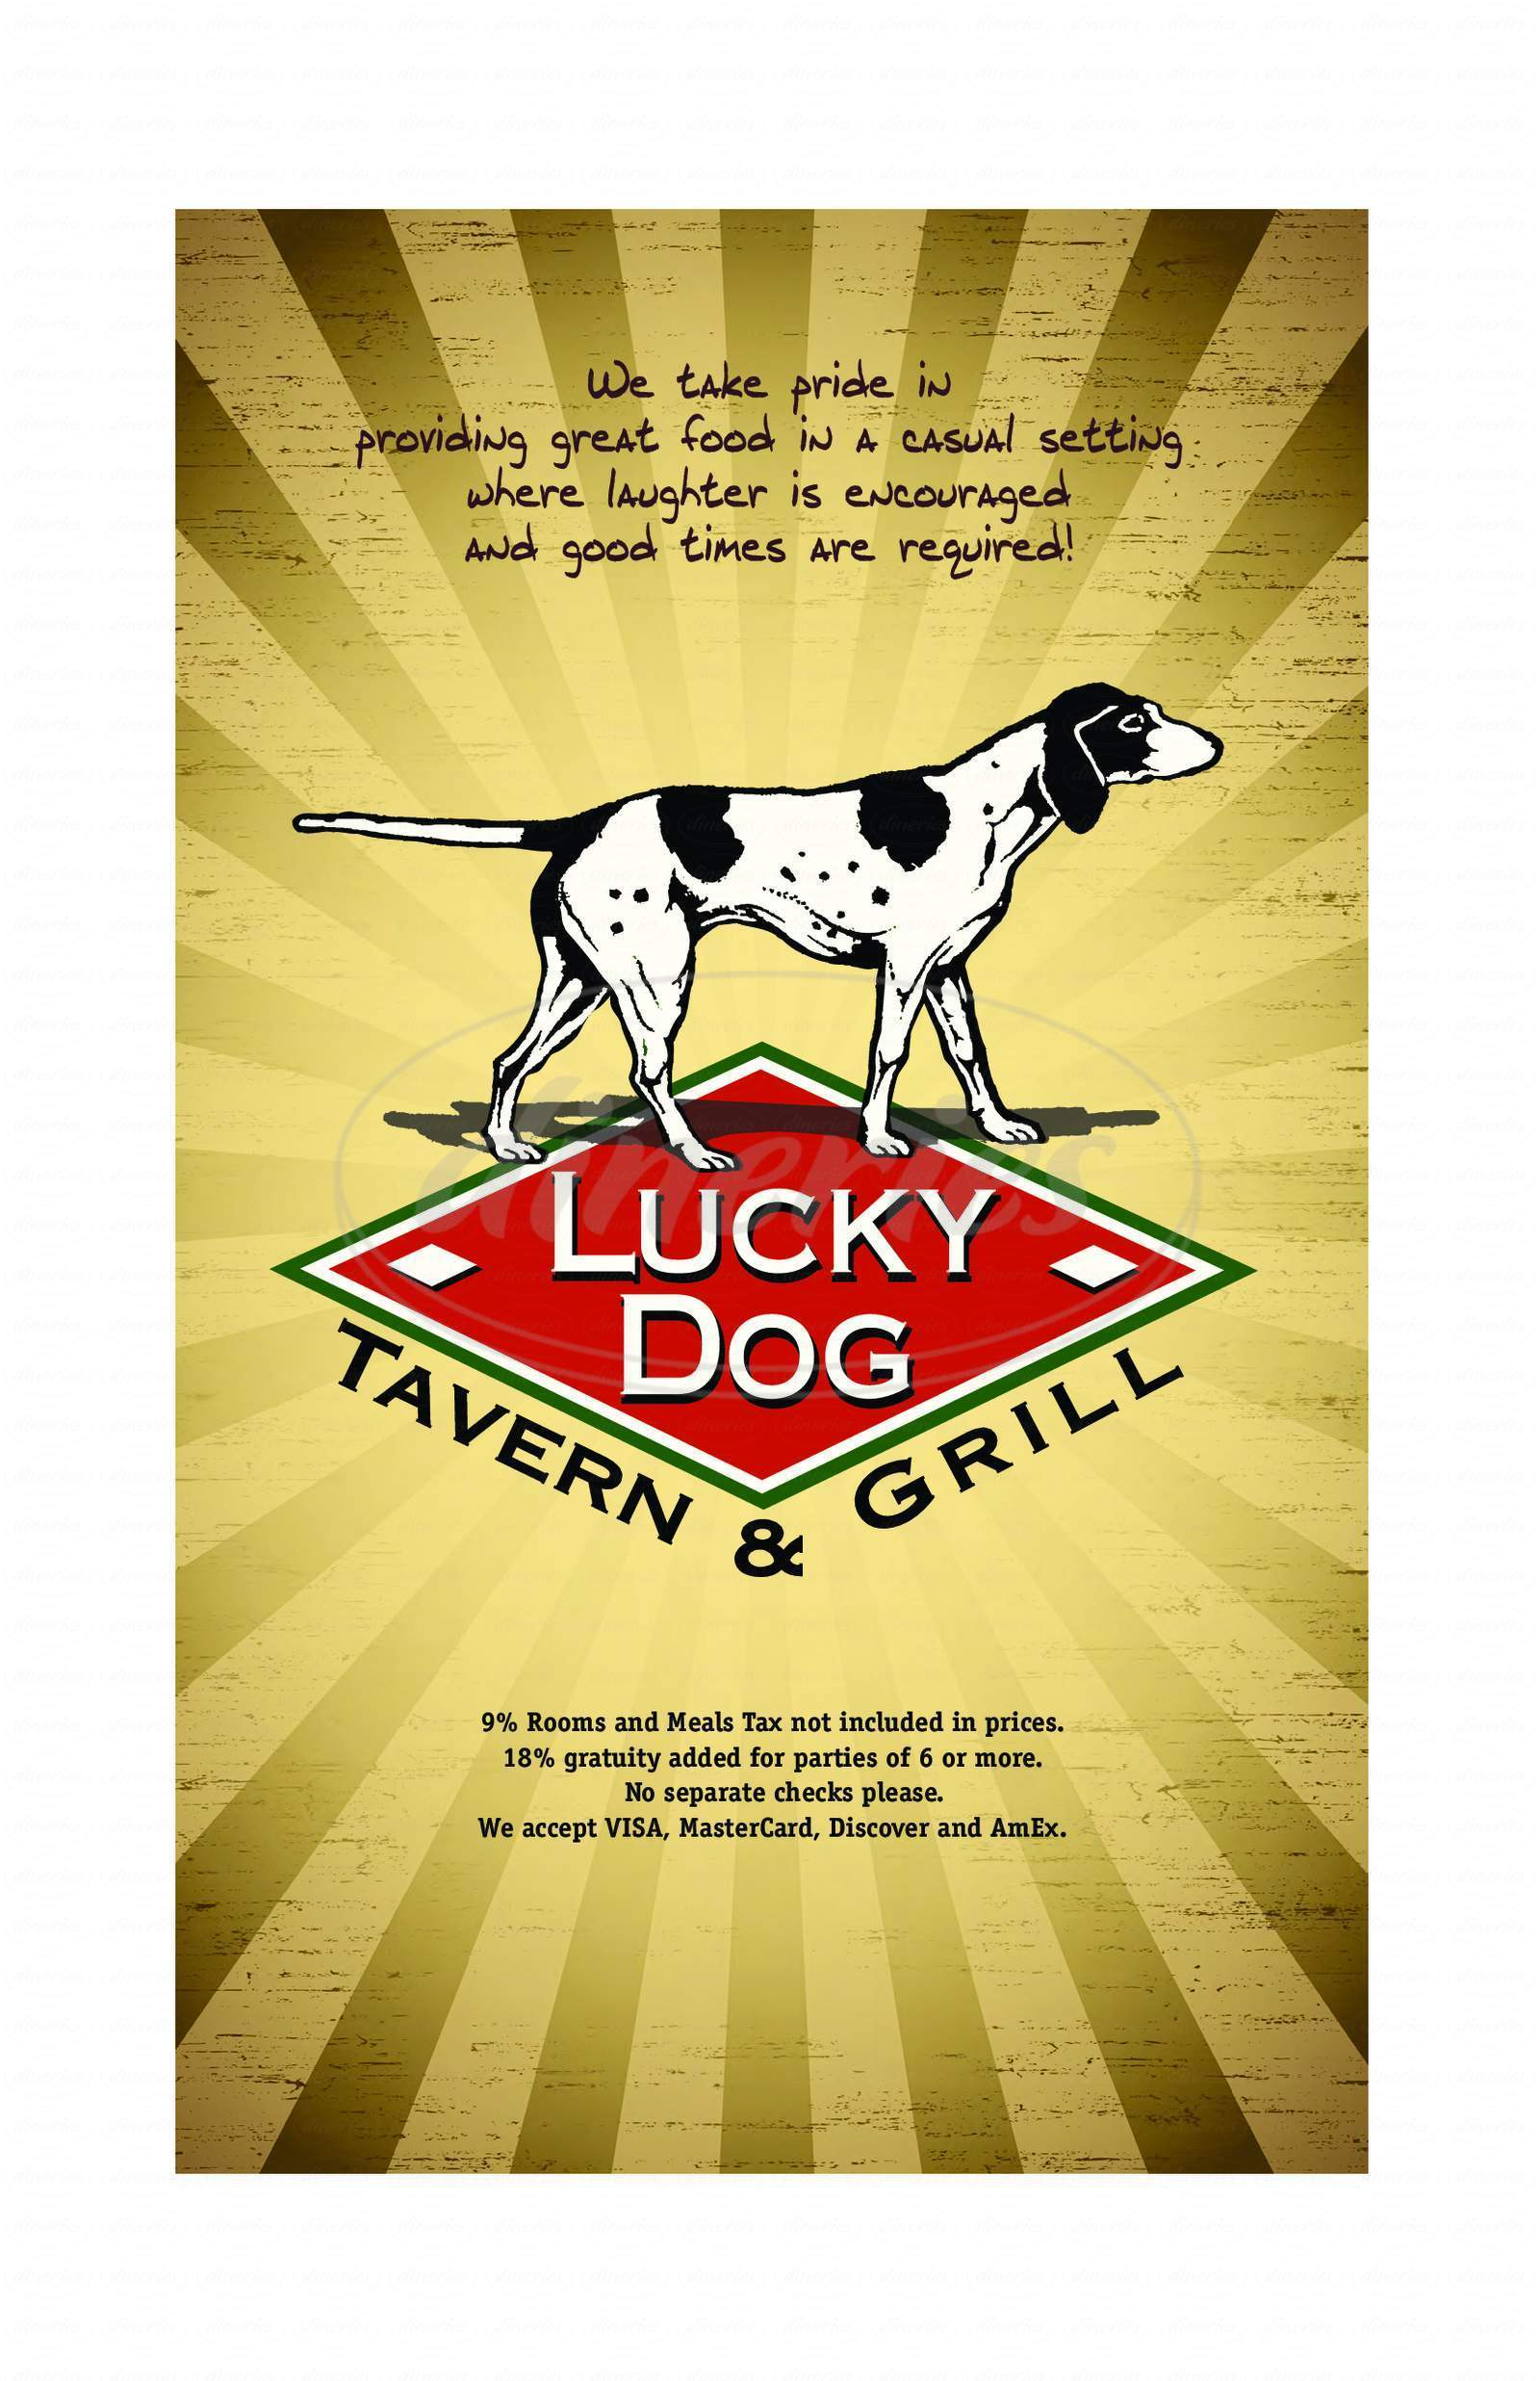 menu for Lucky Dog Tavern & Grill